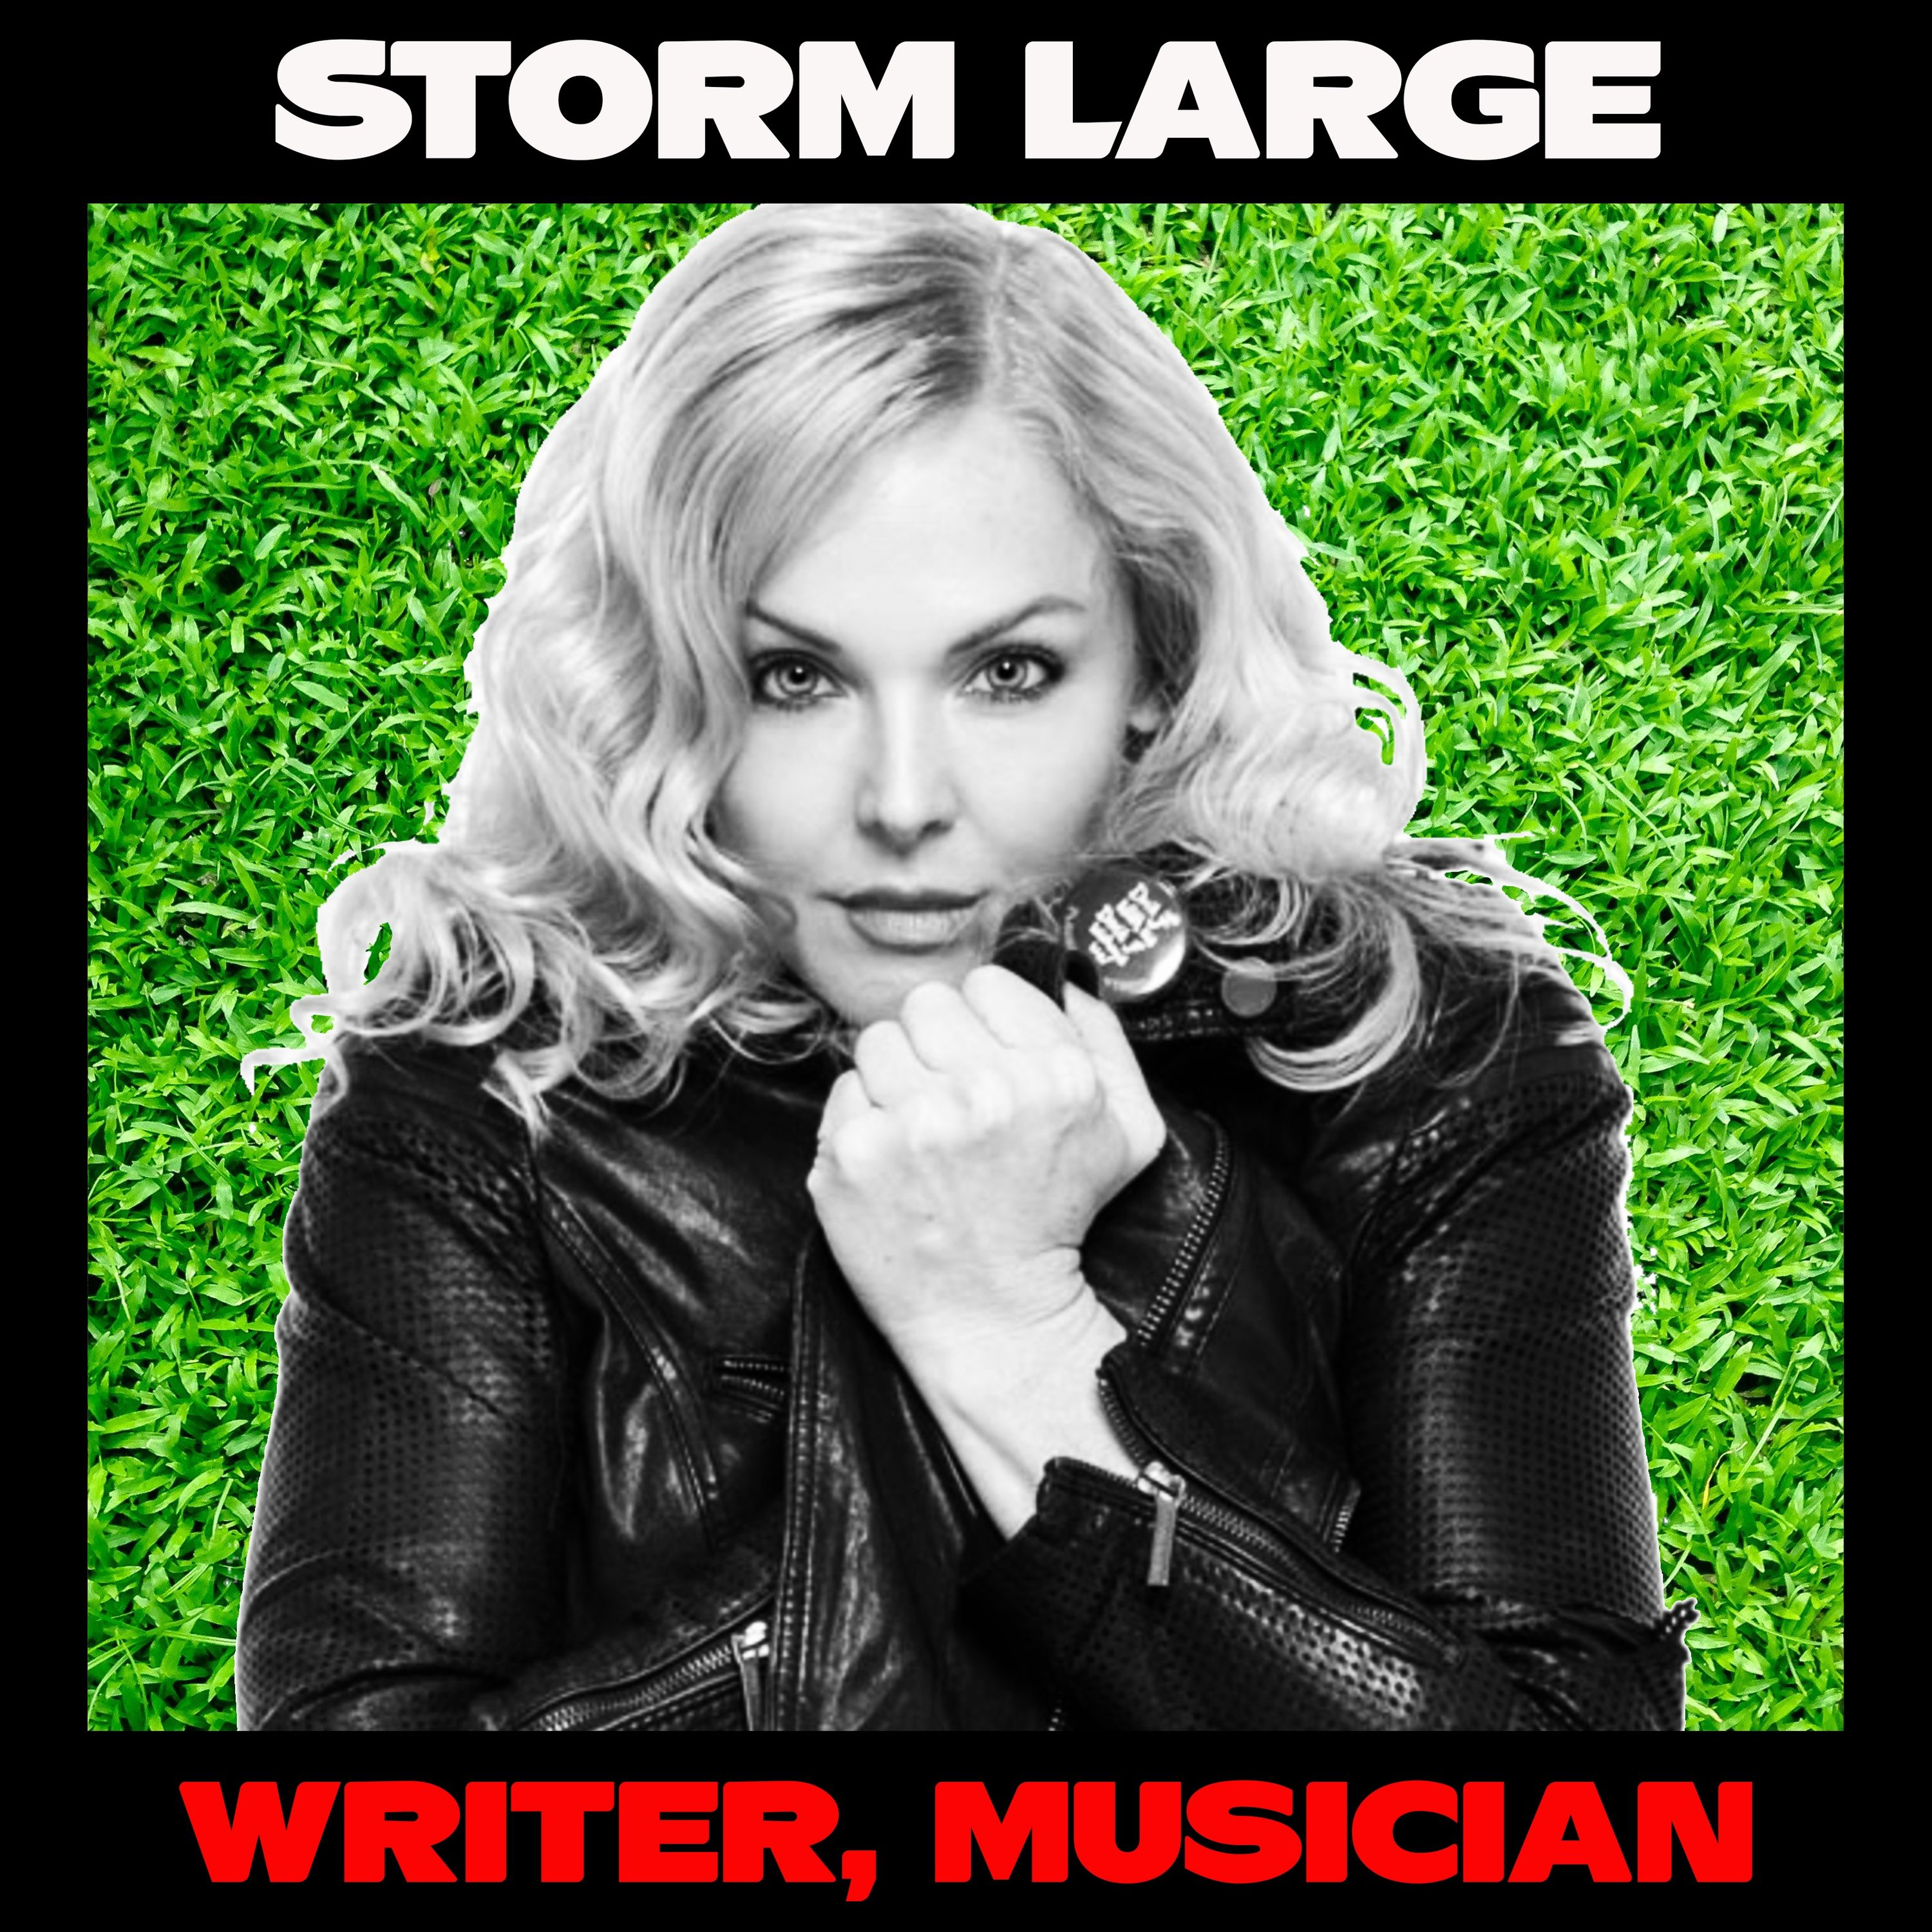 Storm Large: Know Who You Are Not